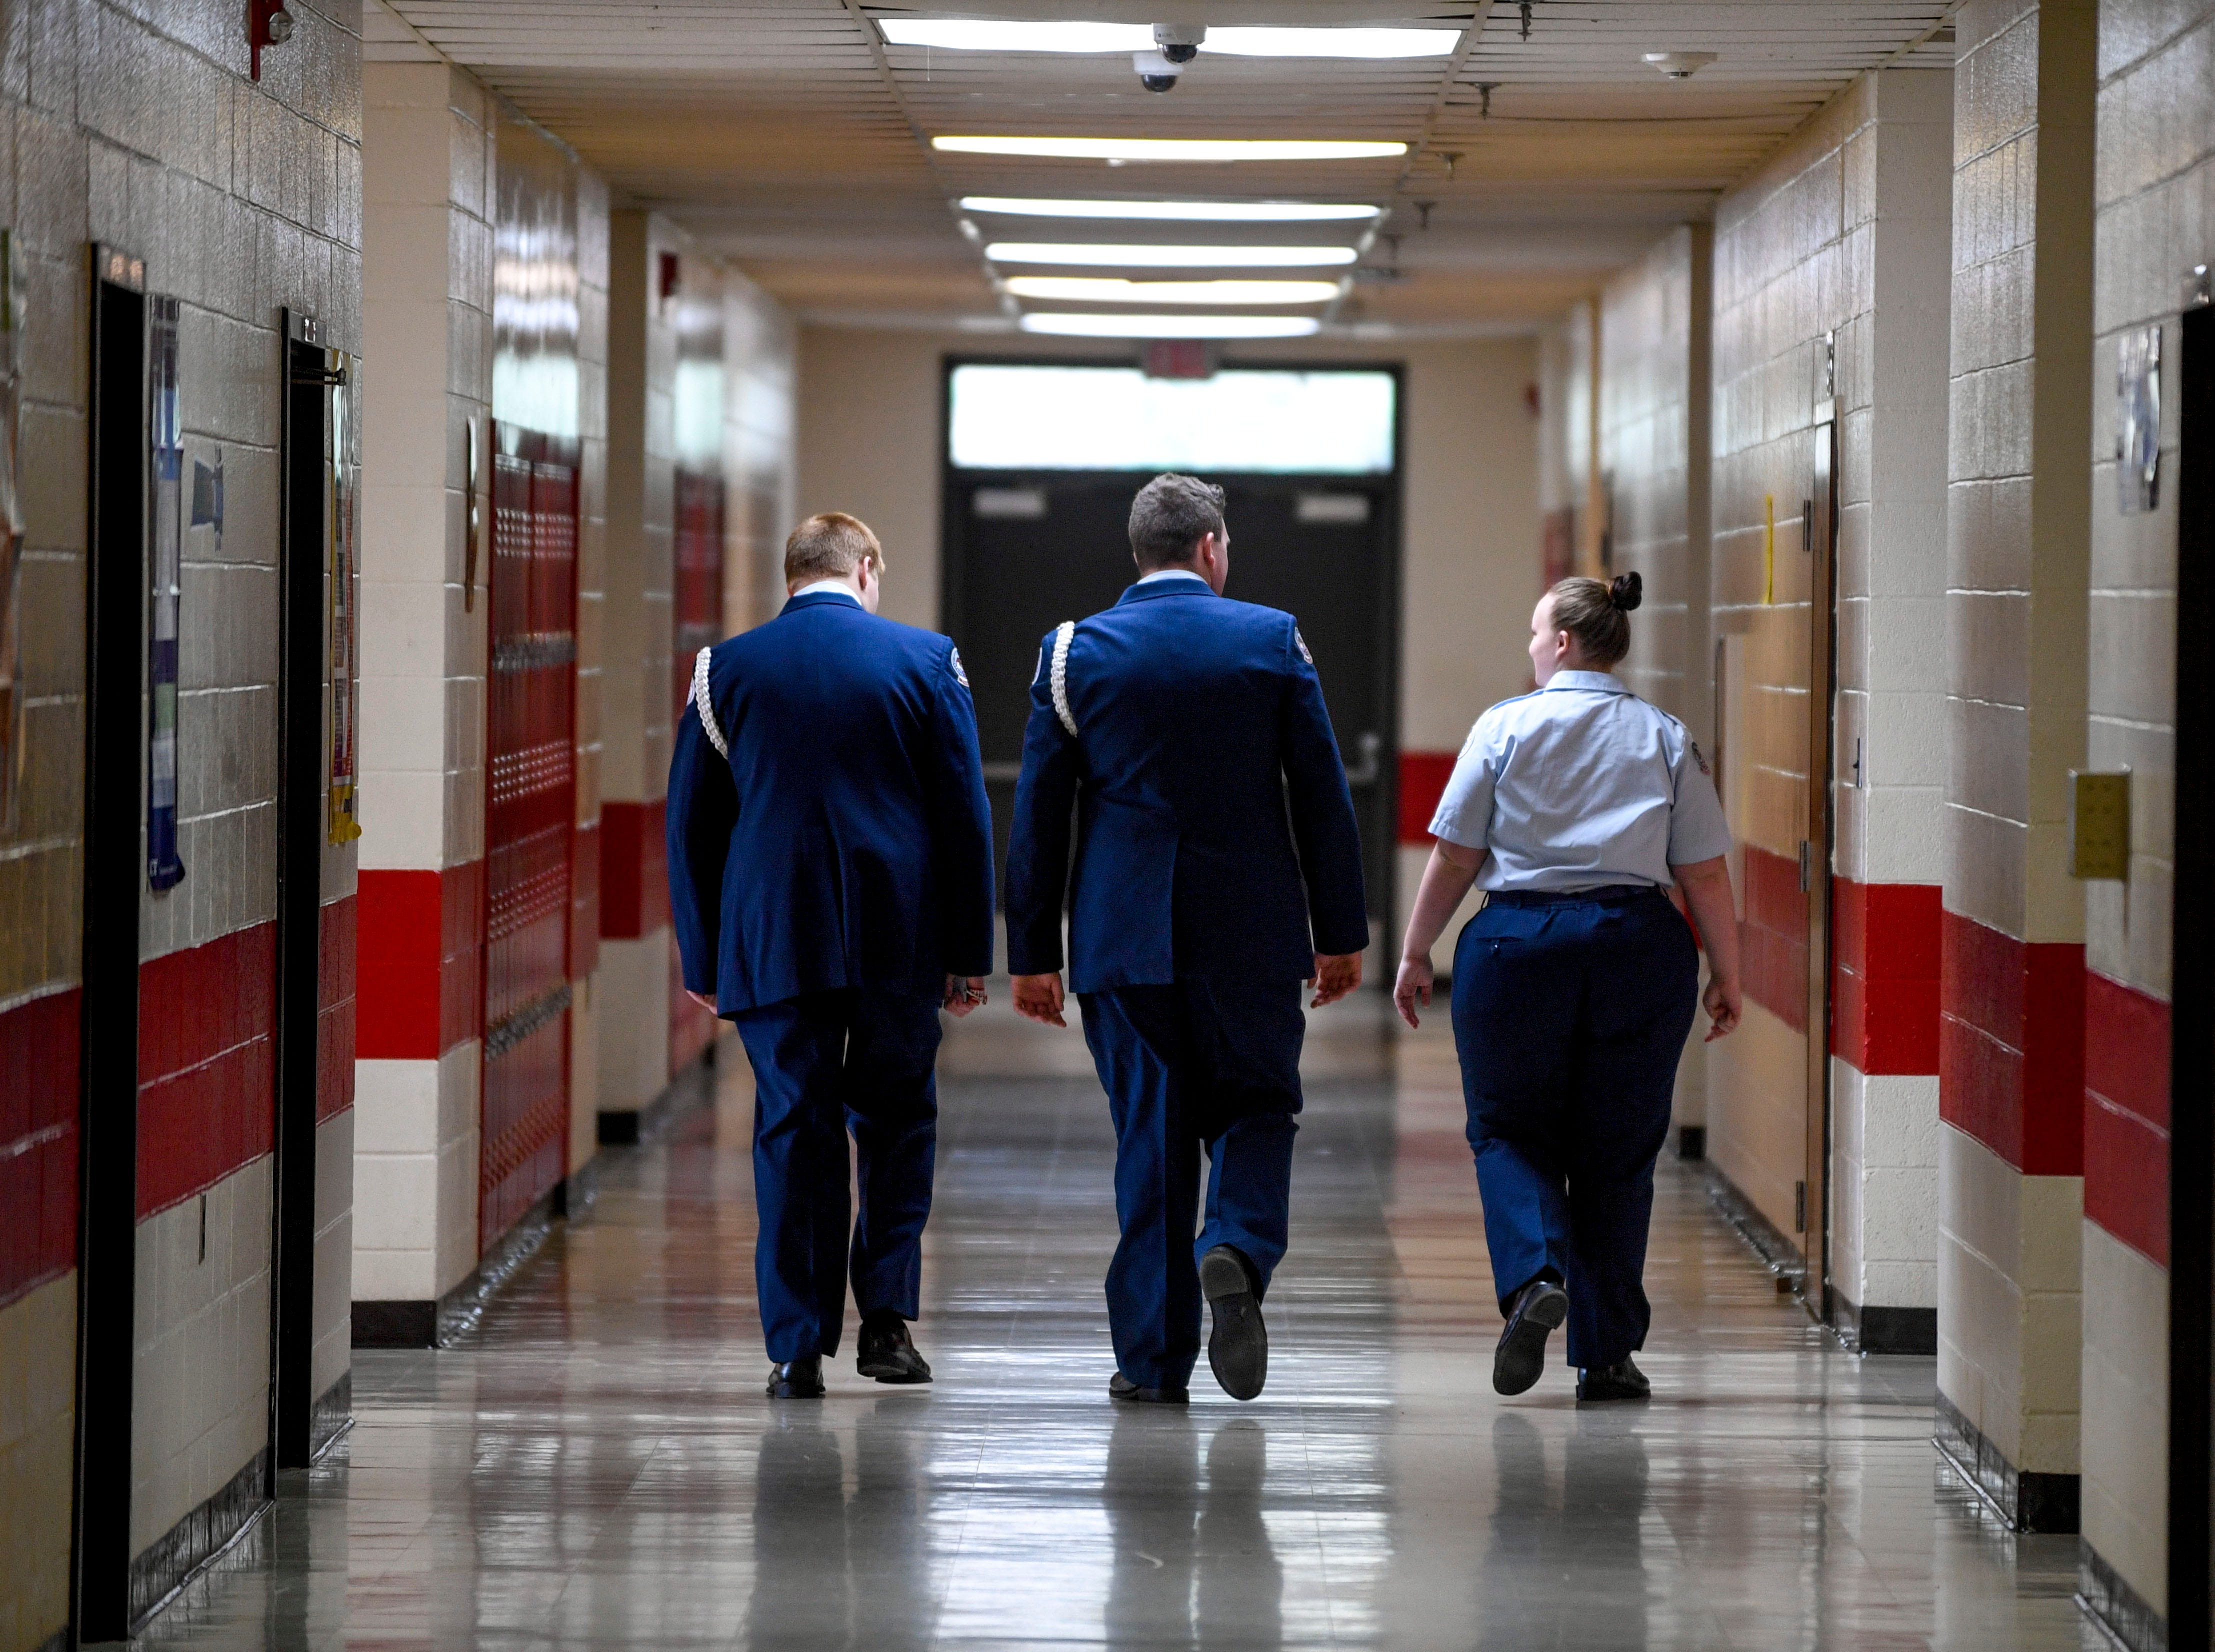 Adam Reeves, 16, left, Kaleb Bull, 17, center, and Allie McGill, 15, right,  return to class after stepping out of class to chat with Army recruiters during ROTC class at Lexington High School in Lexington, Tenn., on Wednesday, Feb. 6, 2019.